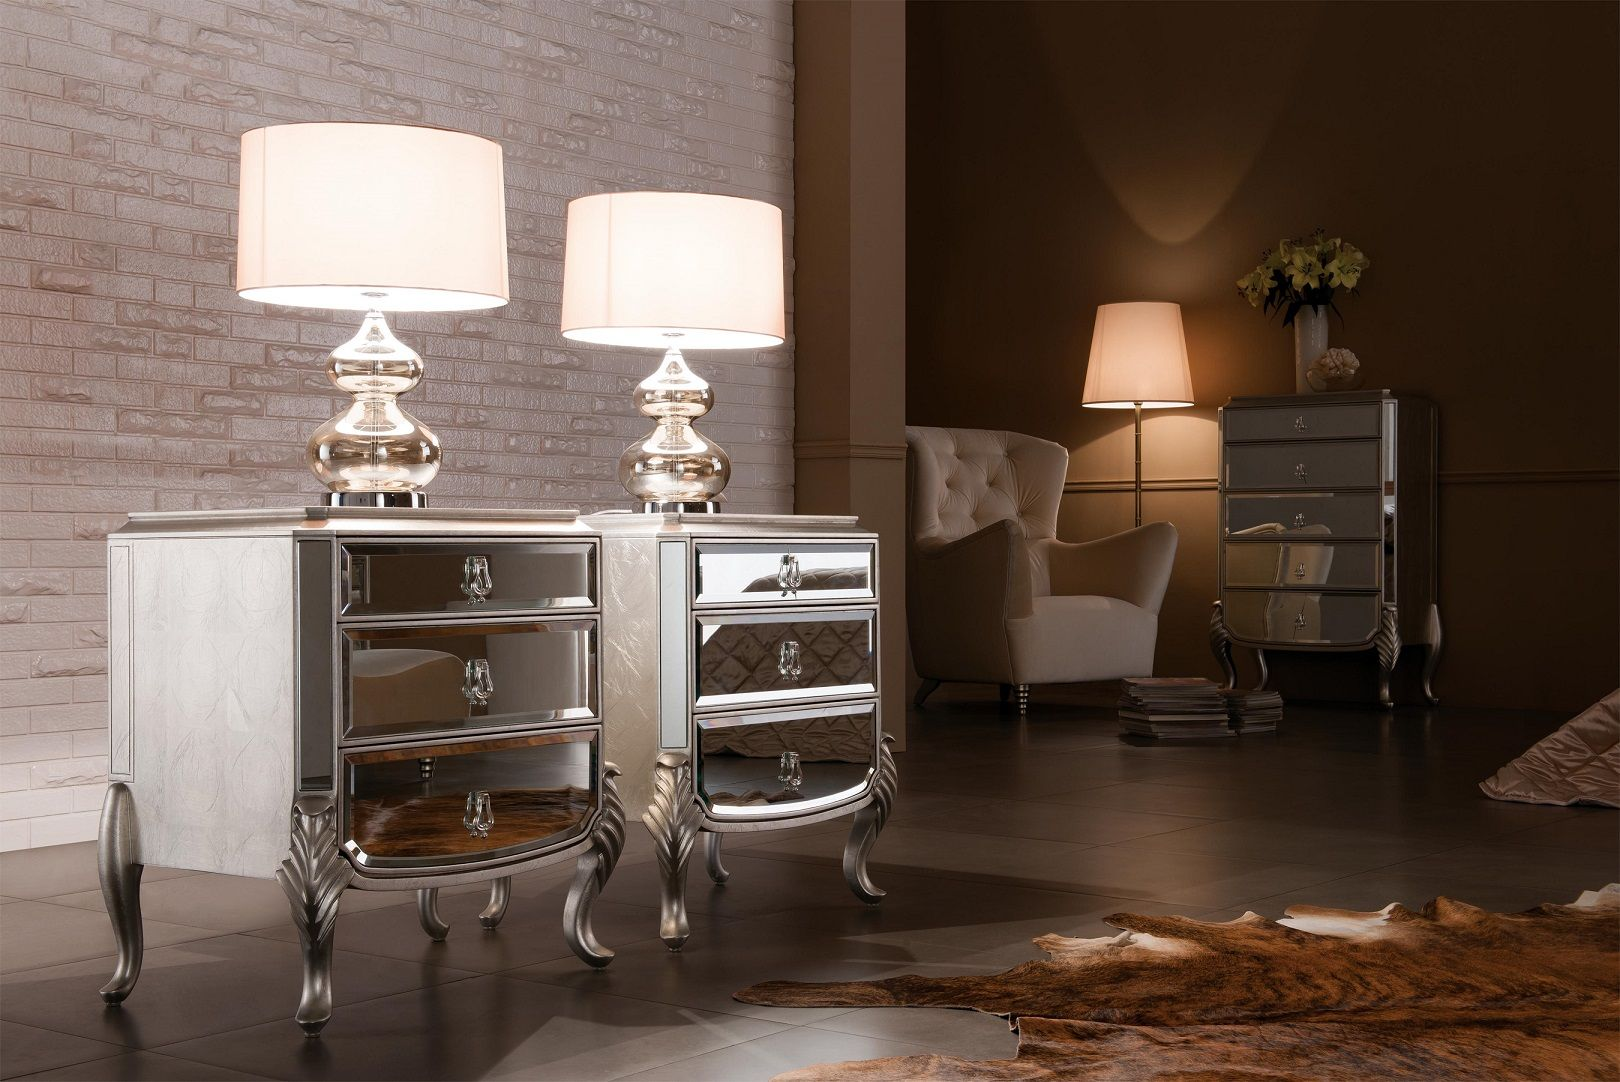 Mirrored Nightstand By Alexis Talbot On Home Mirrored Furniture